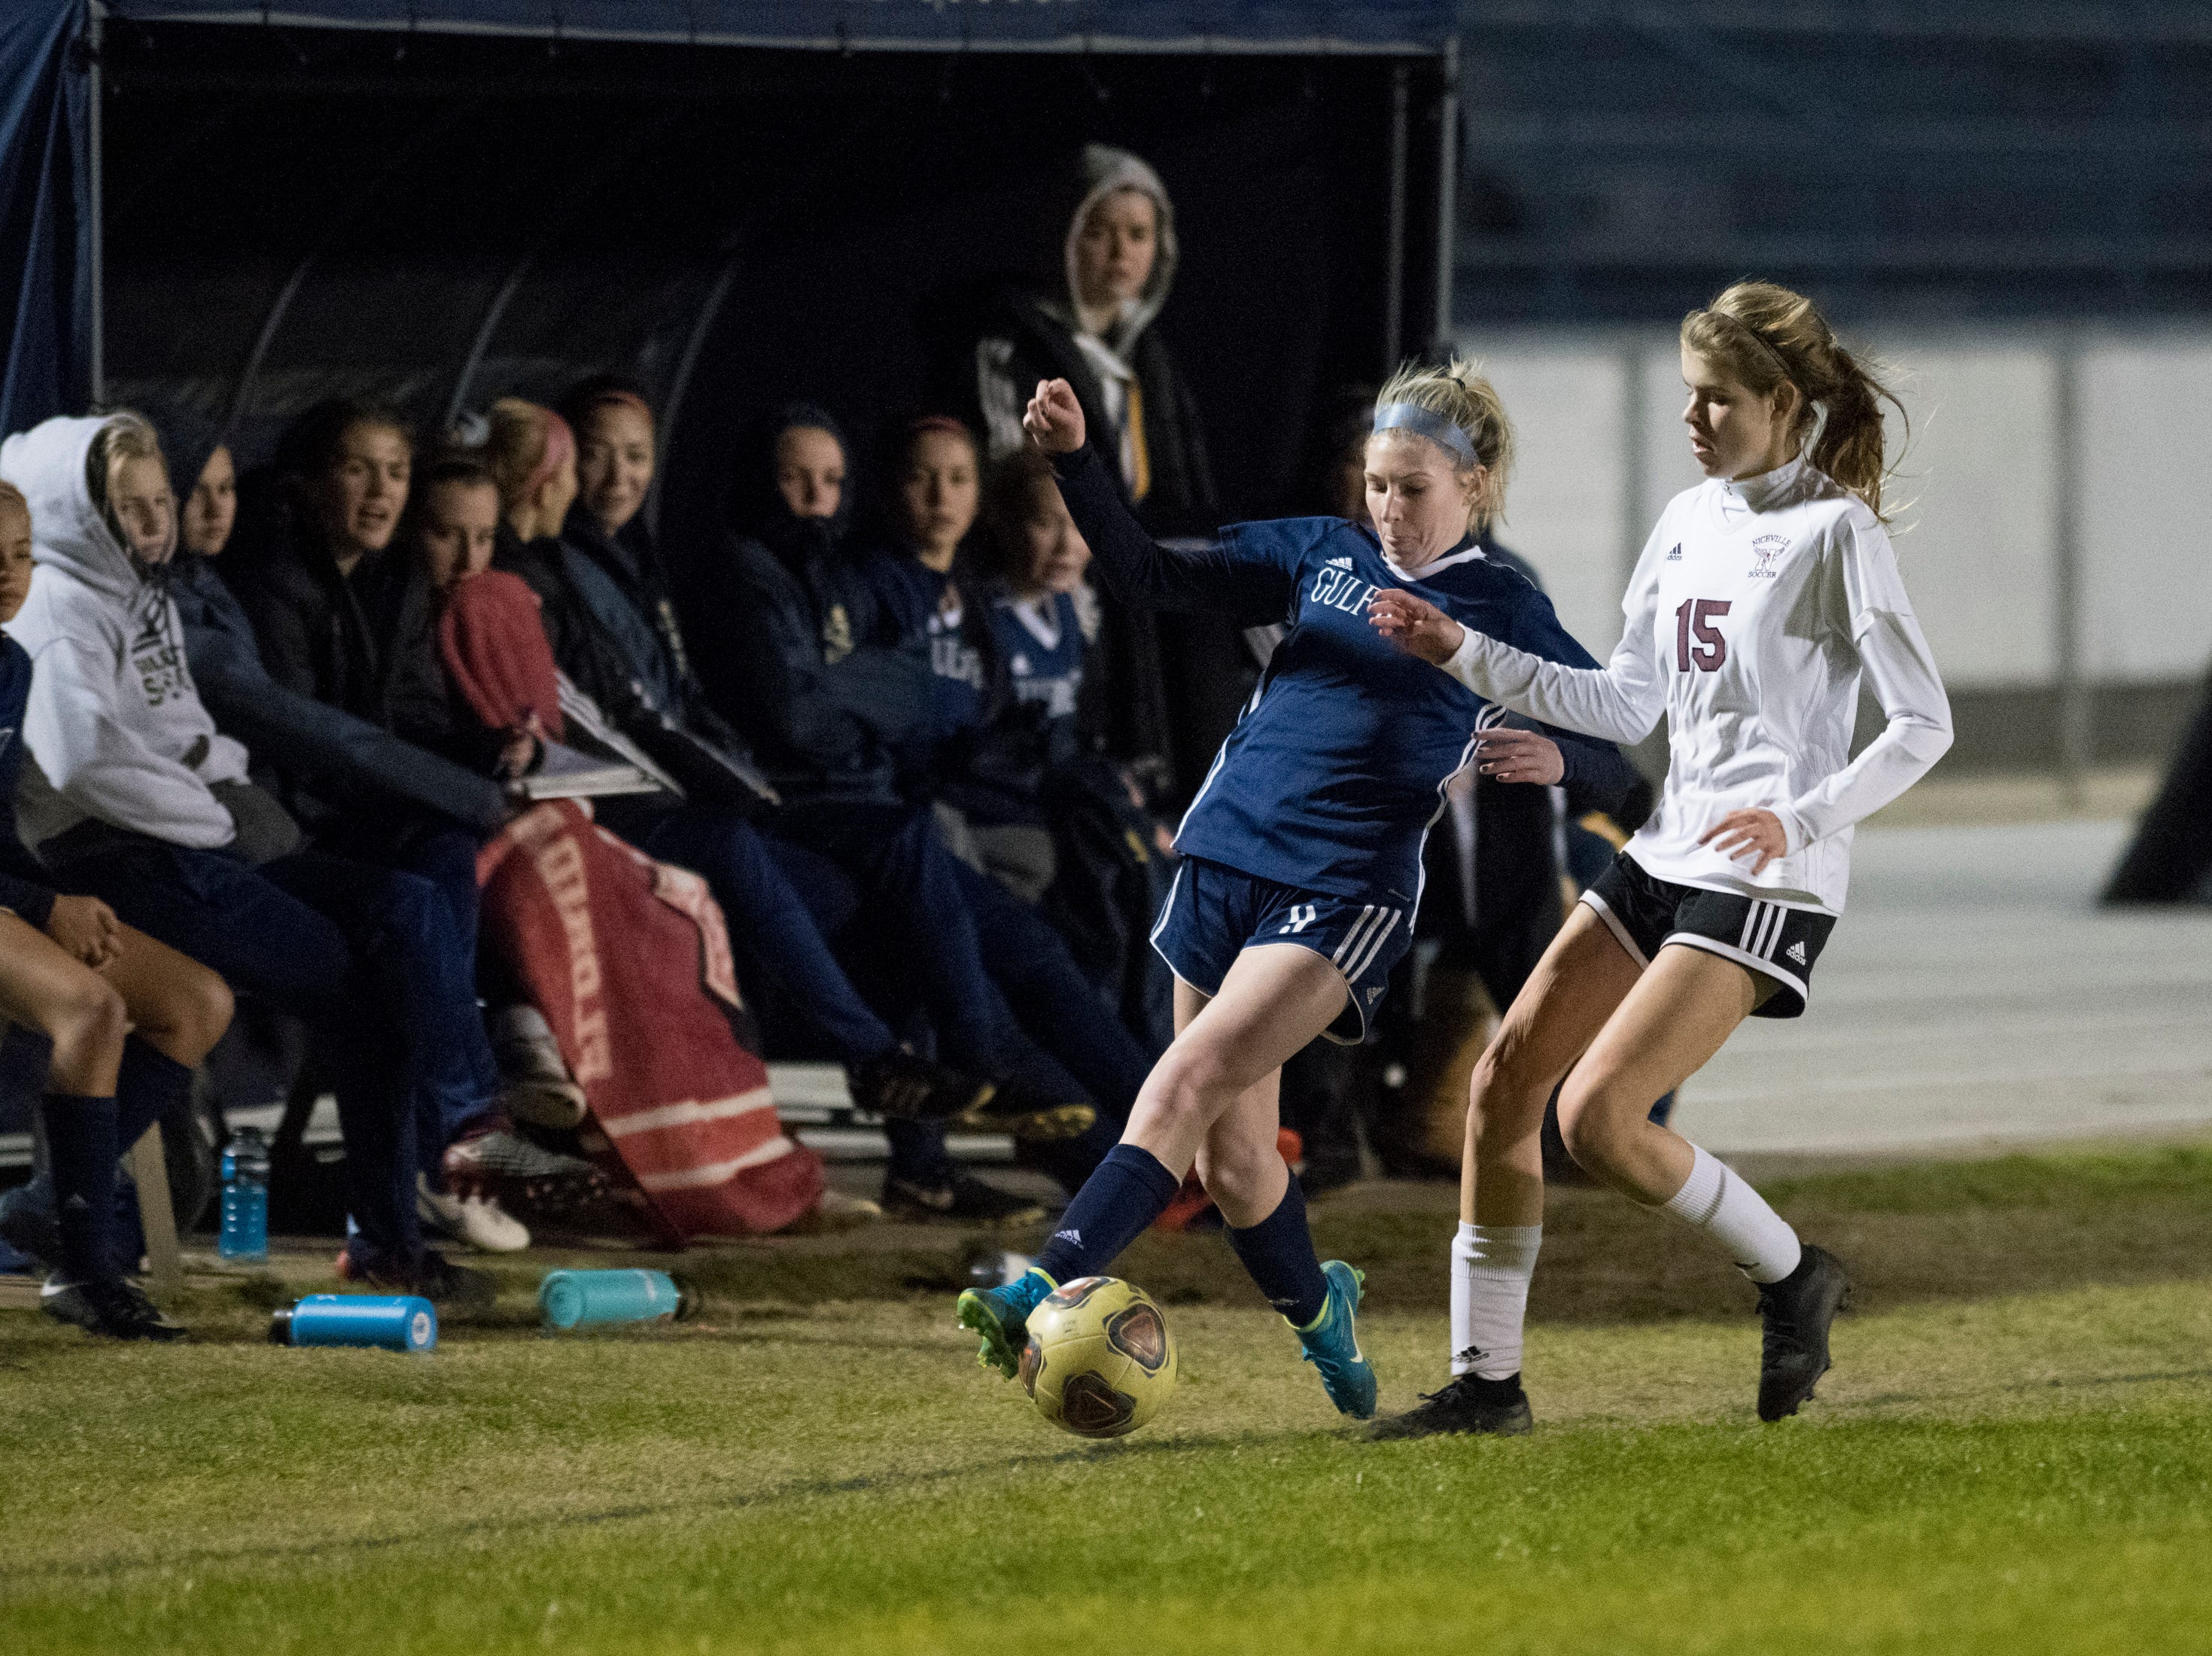 Riley Cassidy (9) and Haley Shelton (15) fight for the ball along the sideline during the Niceville vs Gulf Breeze soccer game at Gulf Breeze High School on Thursday, January 10, 2019.